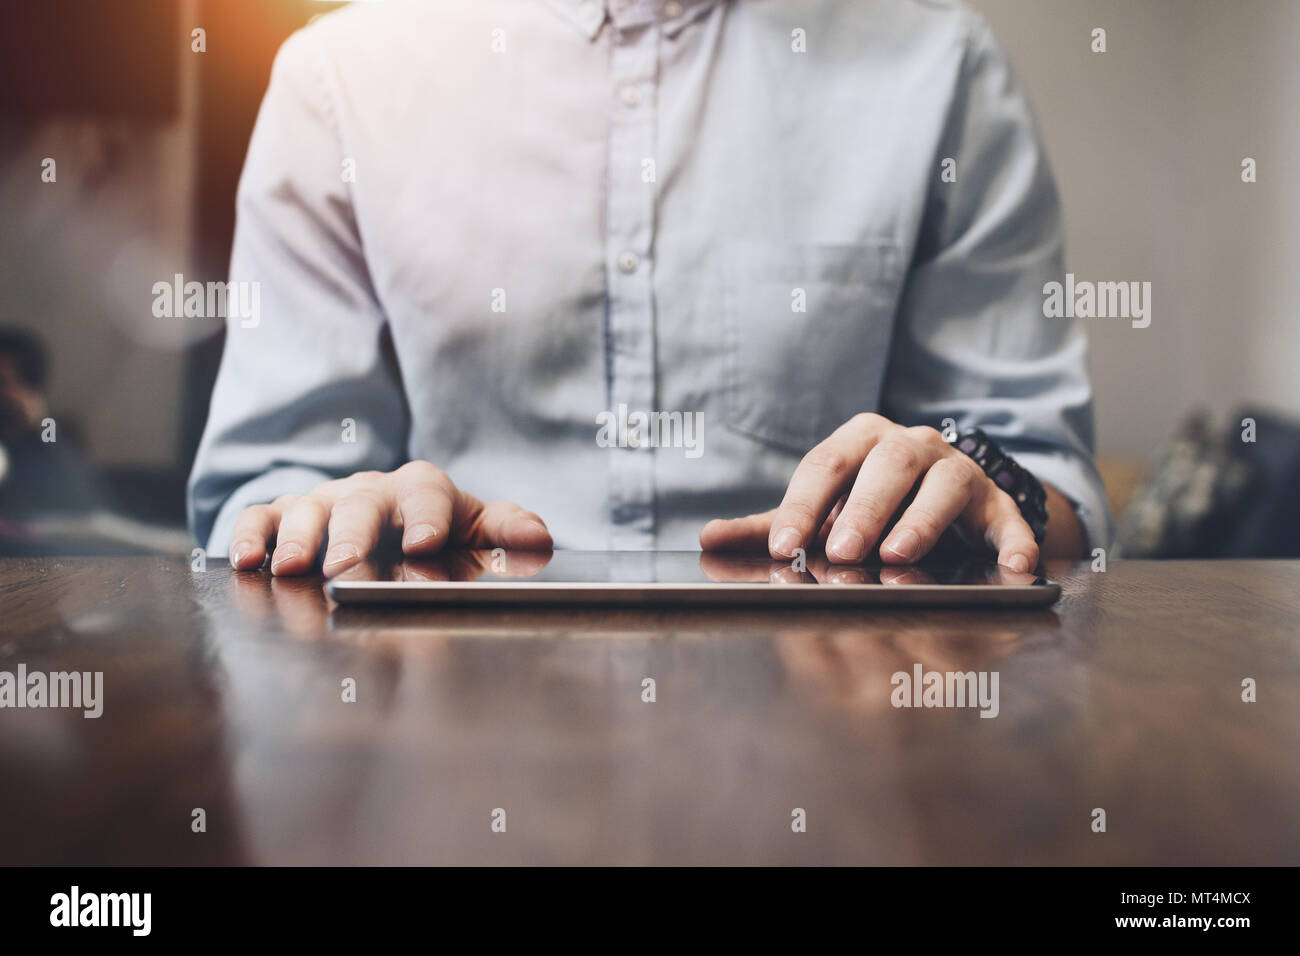 Closeup photo of male hands touching screen tablet. Modern tablet on large wooden table. Businessman typing text on tablet - Stock Image